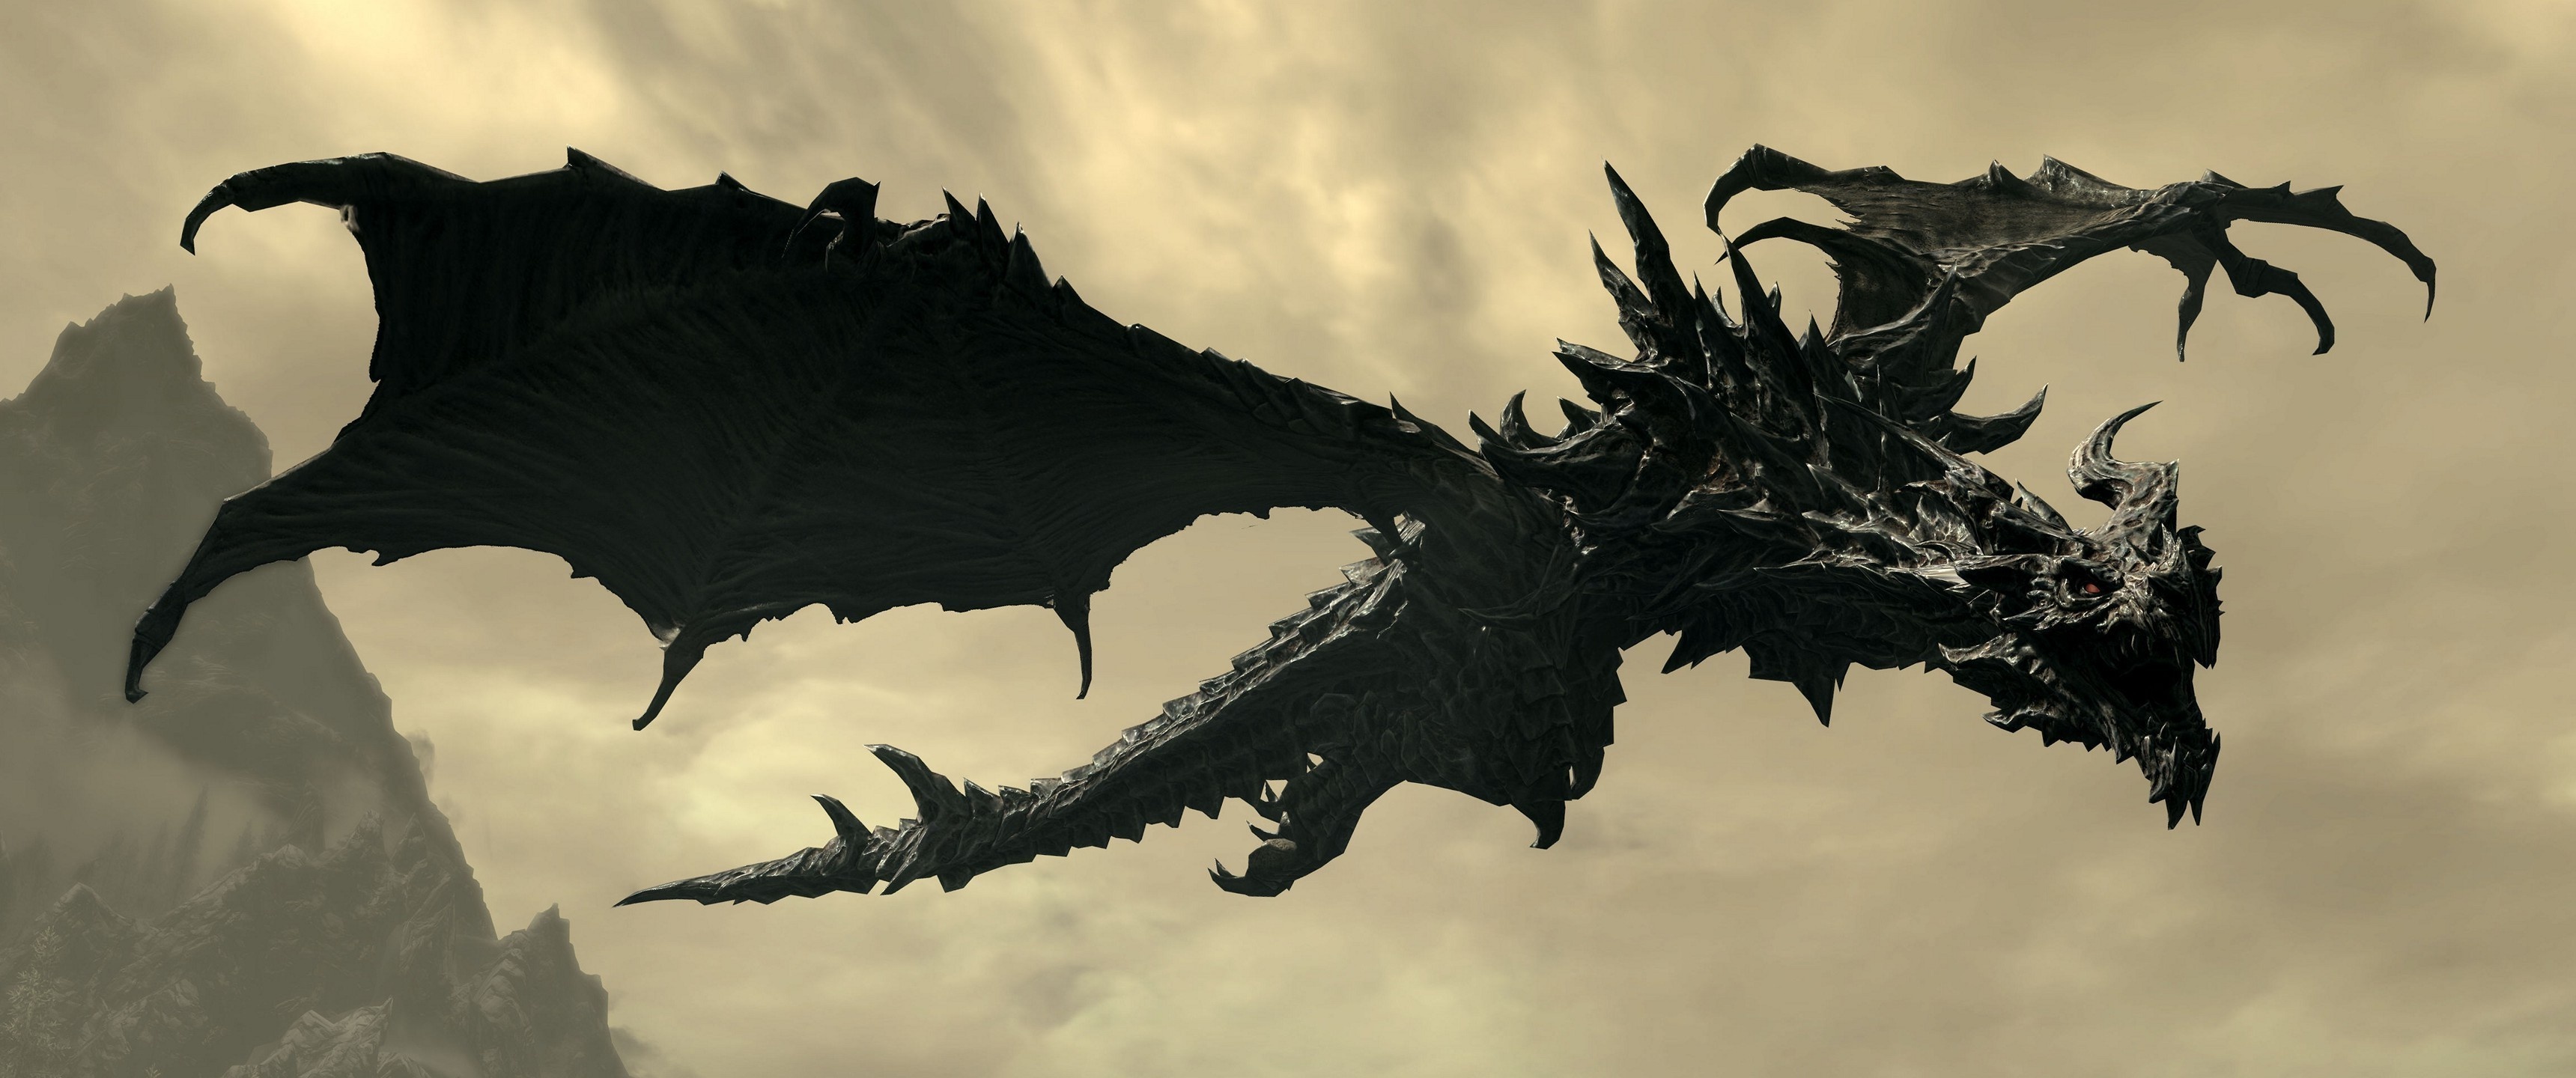 3440x1440 Alduin, Video Games, The Elder Scrolls V: Skyrim, Dragon Wallpapers HD /  Desktop and Mobile Backgrounds